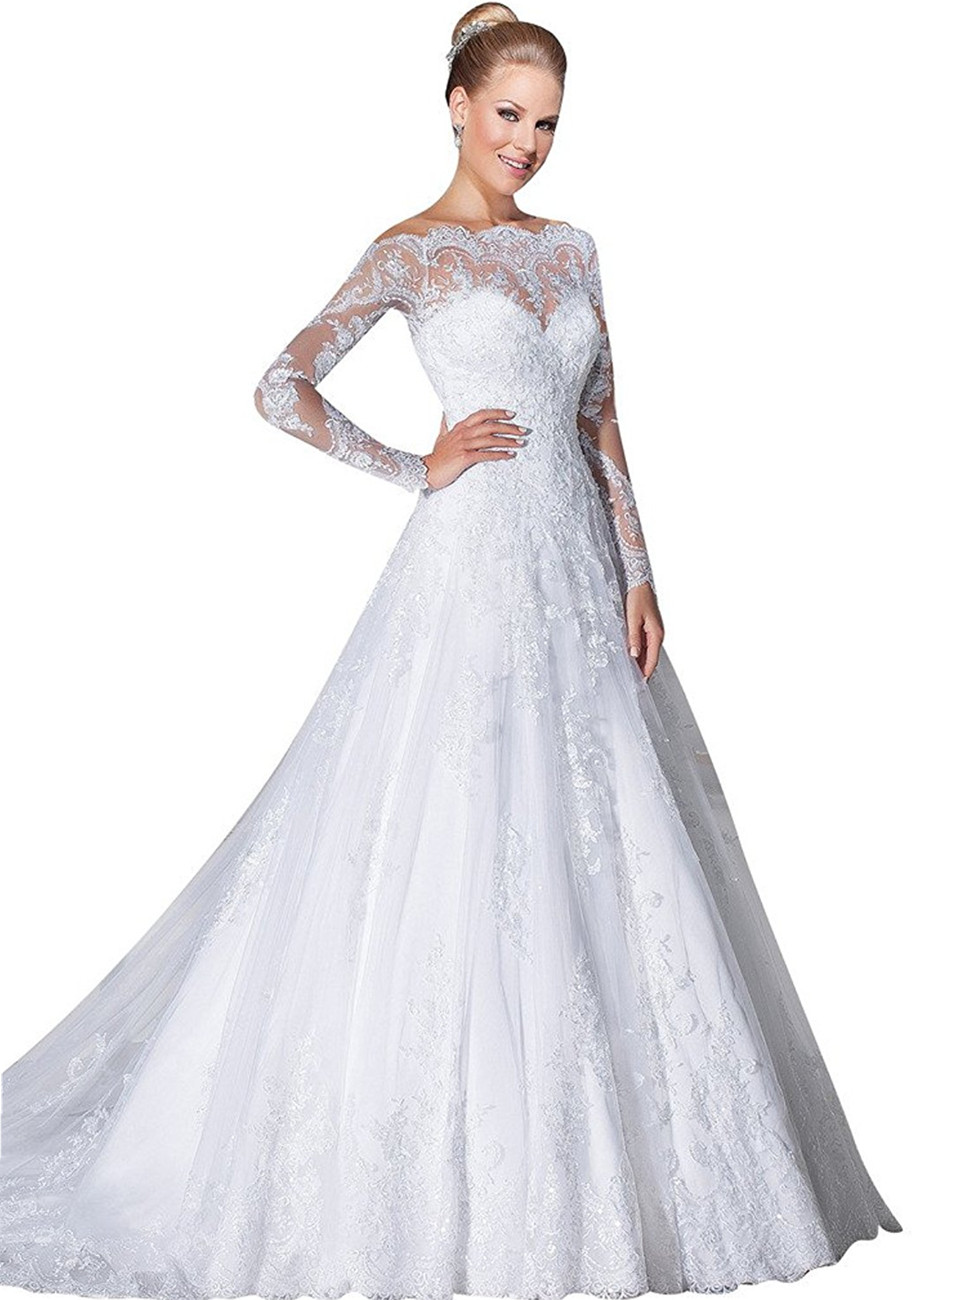 Vernassa A Line Bridal Dresses Long Sleeves Off The Shoulder Lace